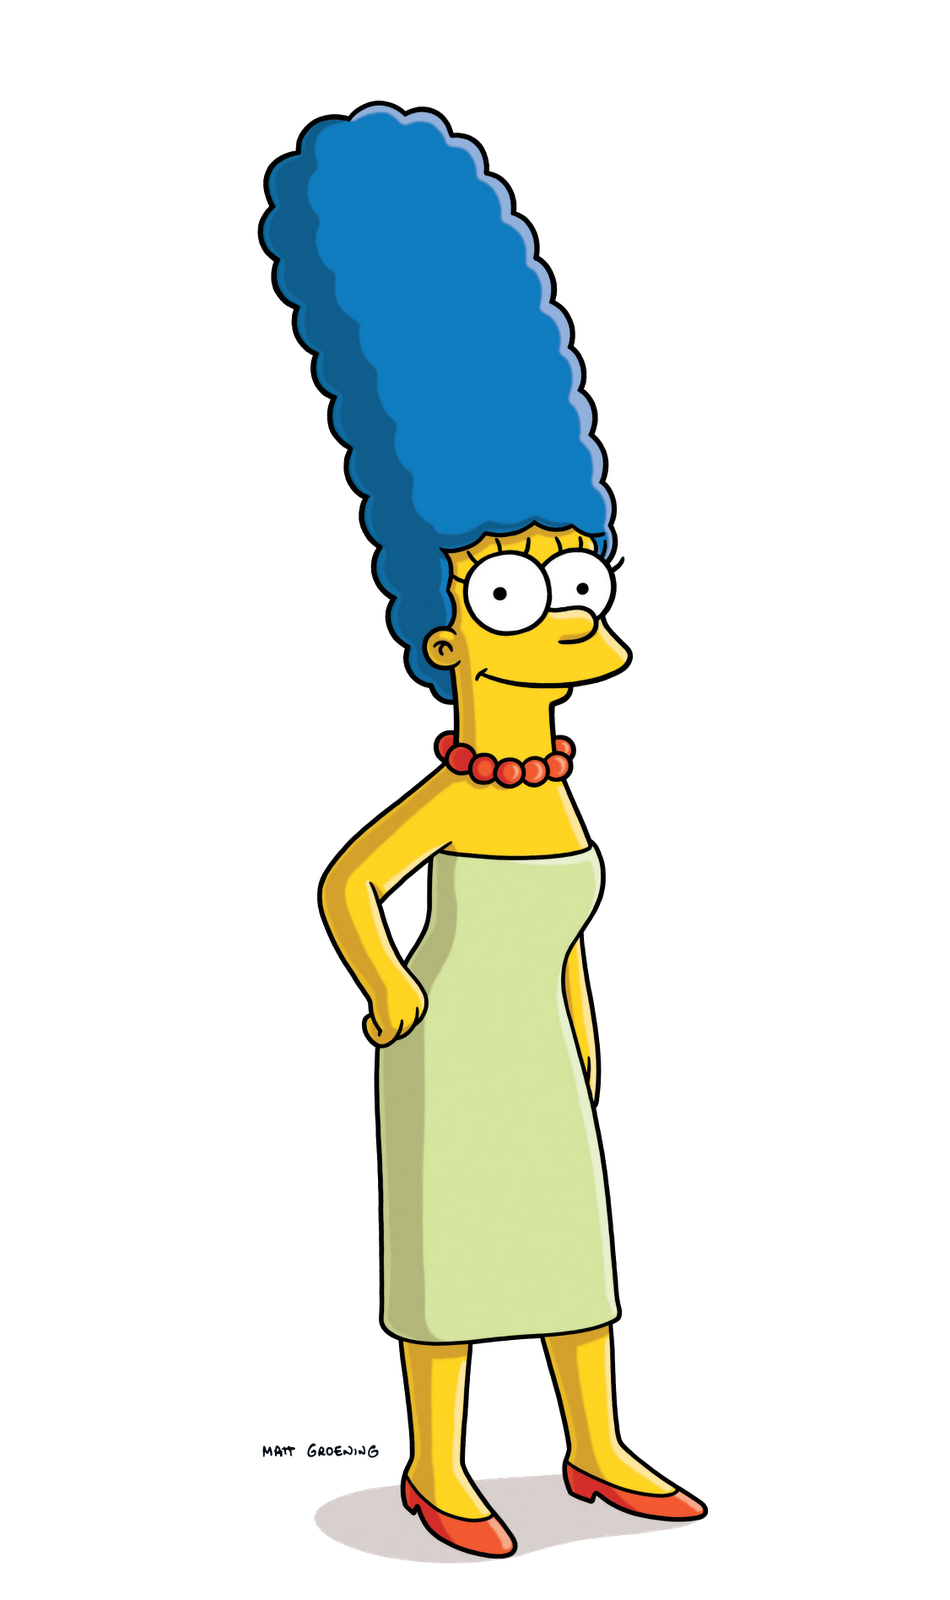 Simpsons png. Cartoon characters pack